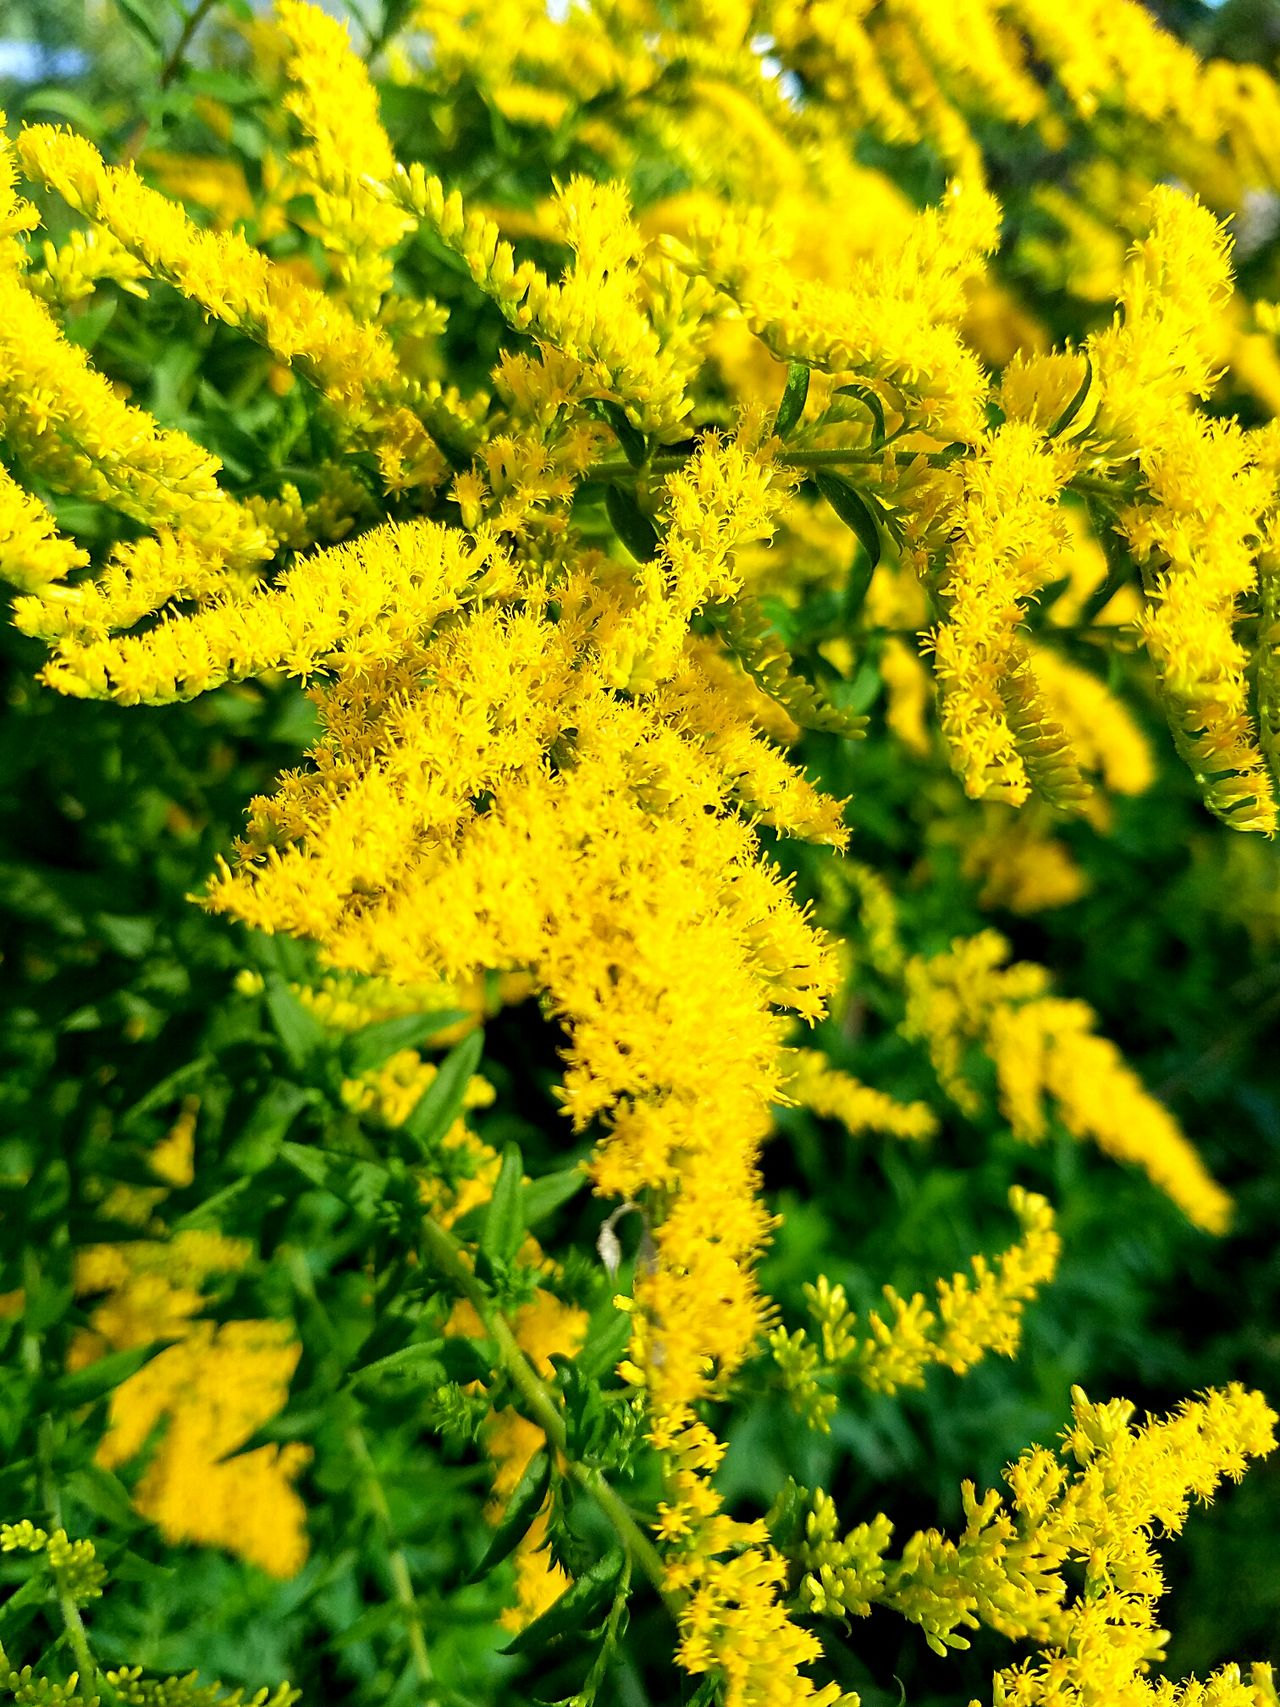 Goldenrod Yellow Flower Nature Beauty In Nature Happiness Country Roads Beautiful Serenity Tranquility Minnesota FlowerGardening Vibrant Colors Natural Light CountryLivinG Myview Freshness HelloEyeEm